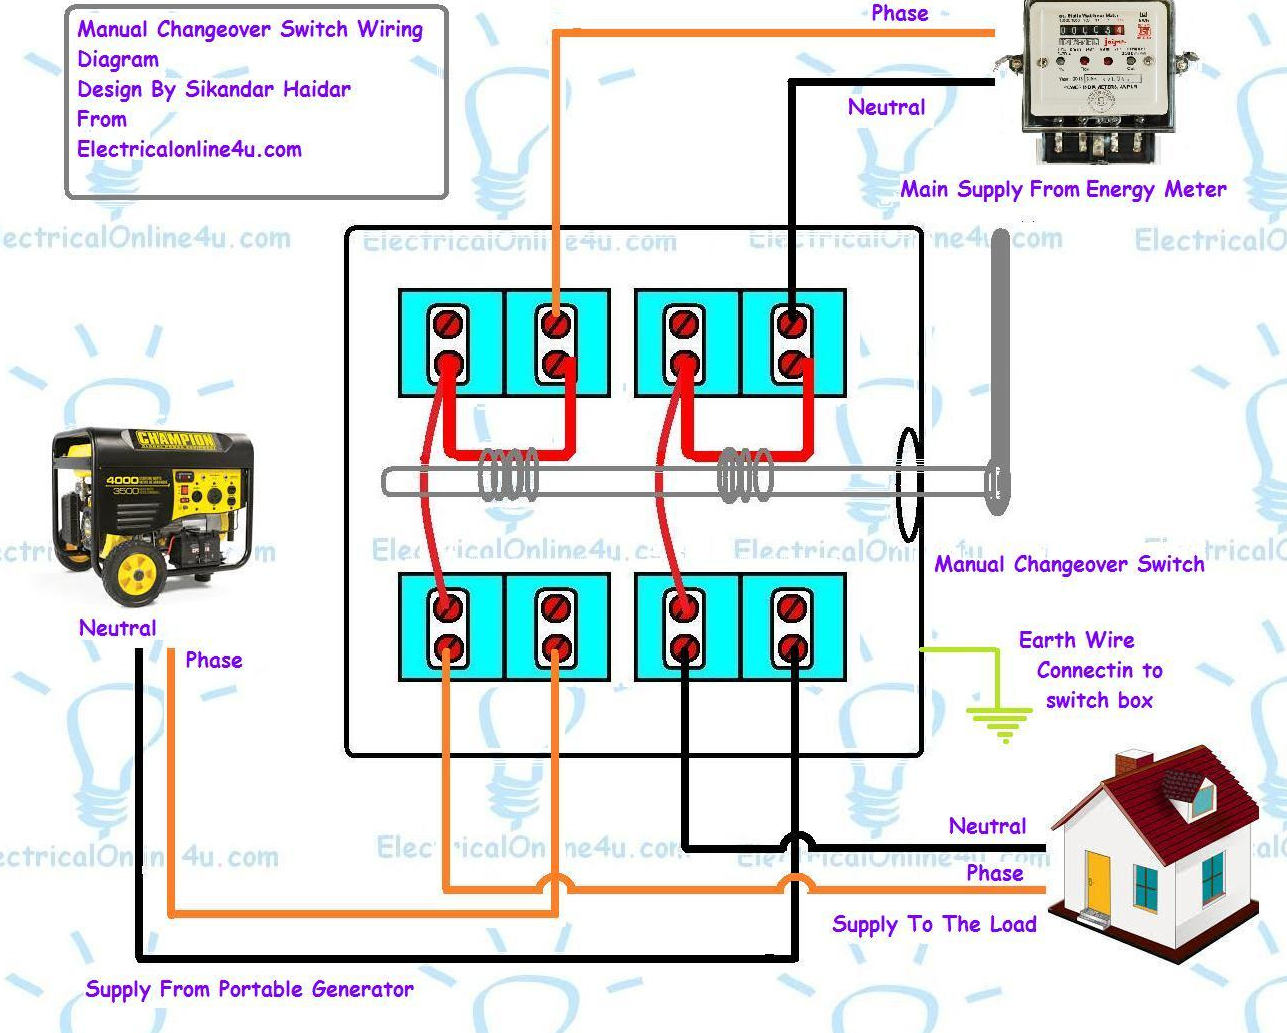 Manual Changeover Switch Wiring Diagram For Portable Generator House Light